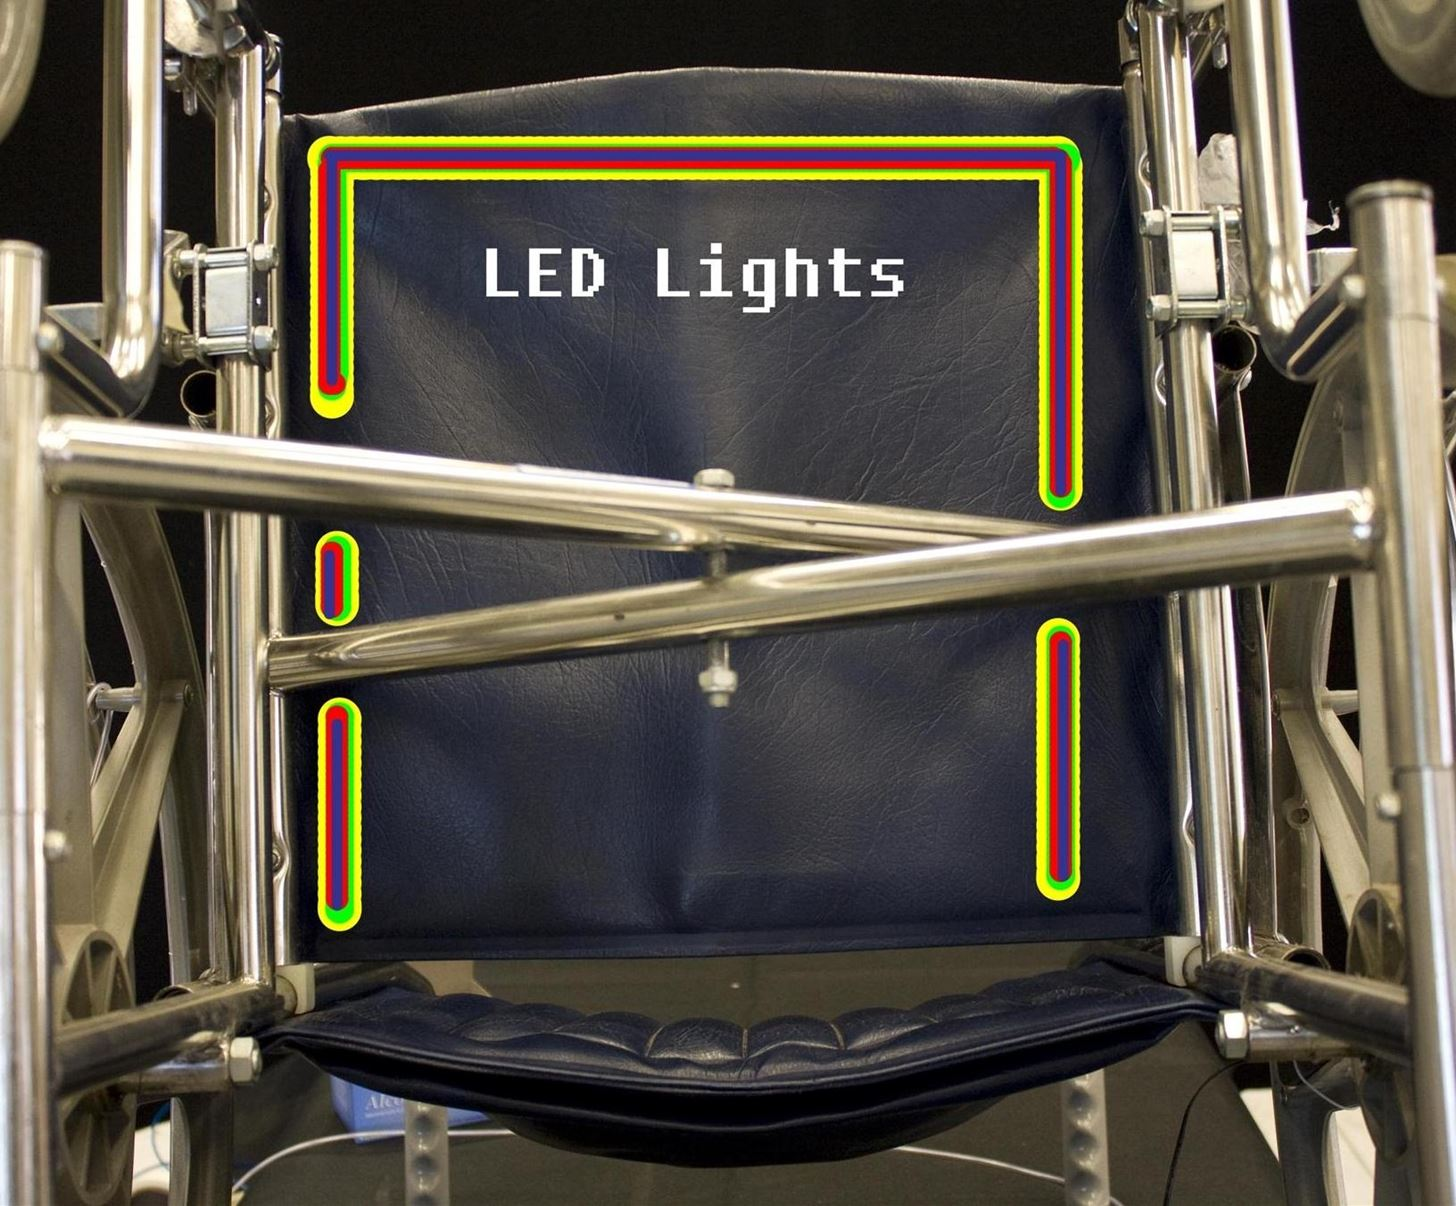 How to Illuminate a Wheelchair for Safety Using EL Wire & LED Strip